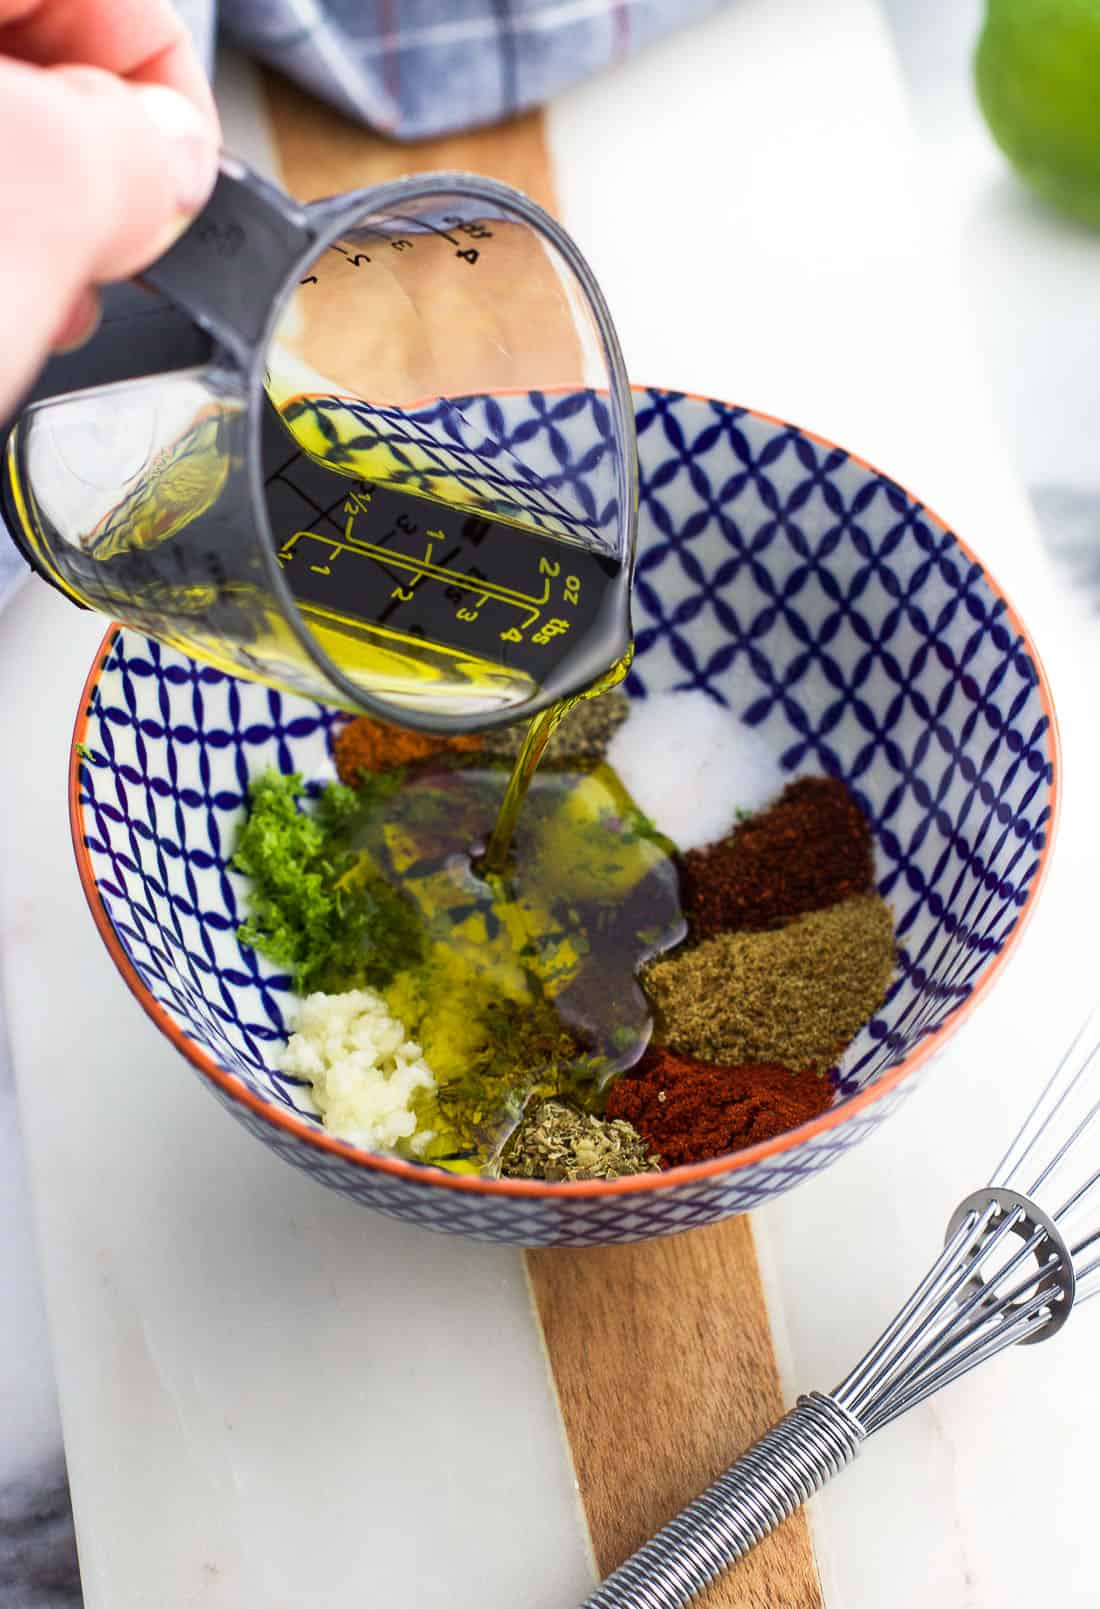 Olive oil being poured into the small bowl with the chili lime seasonings